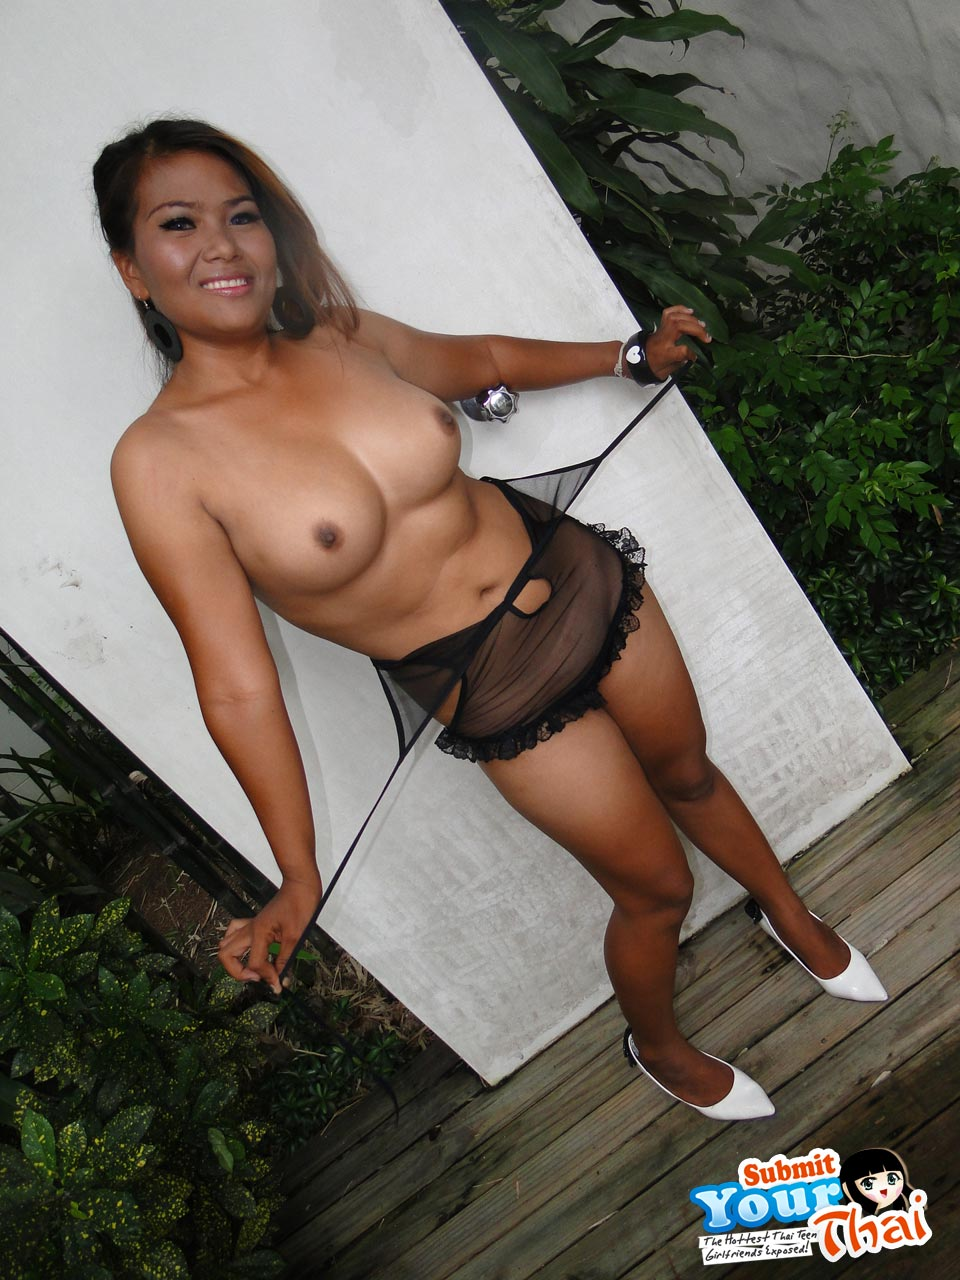 Sweet Thai Girl With Big Tits Posing Outdoors  Asian Porn -5180